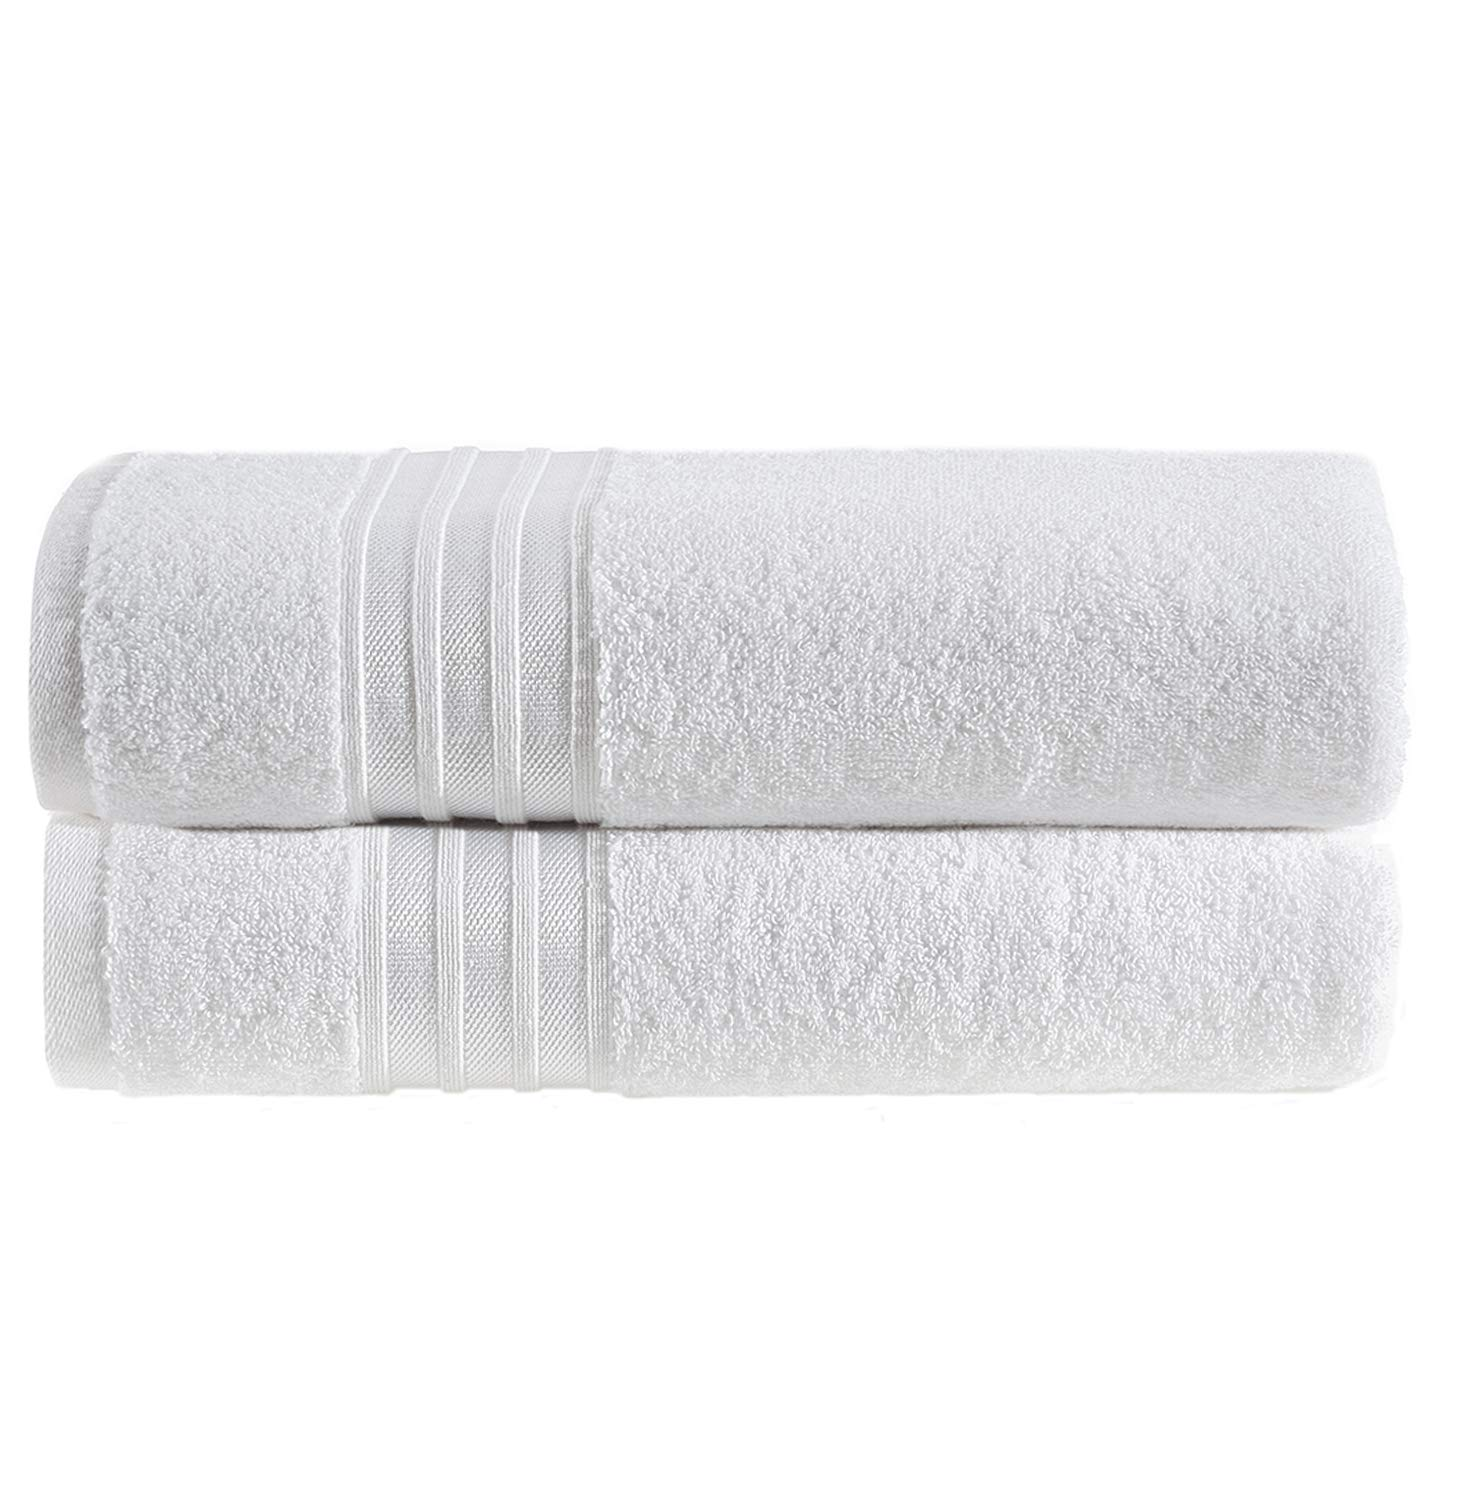 Hammam Linen - Luxury White Bath Towel Set